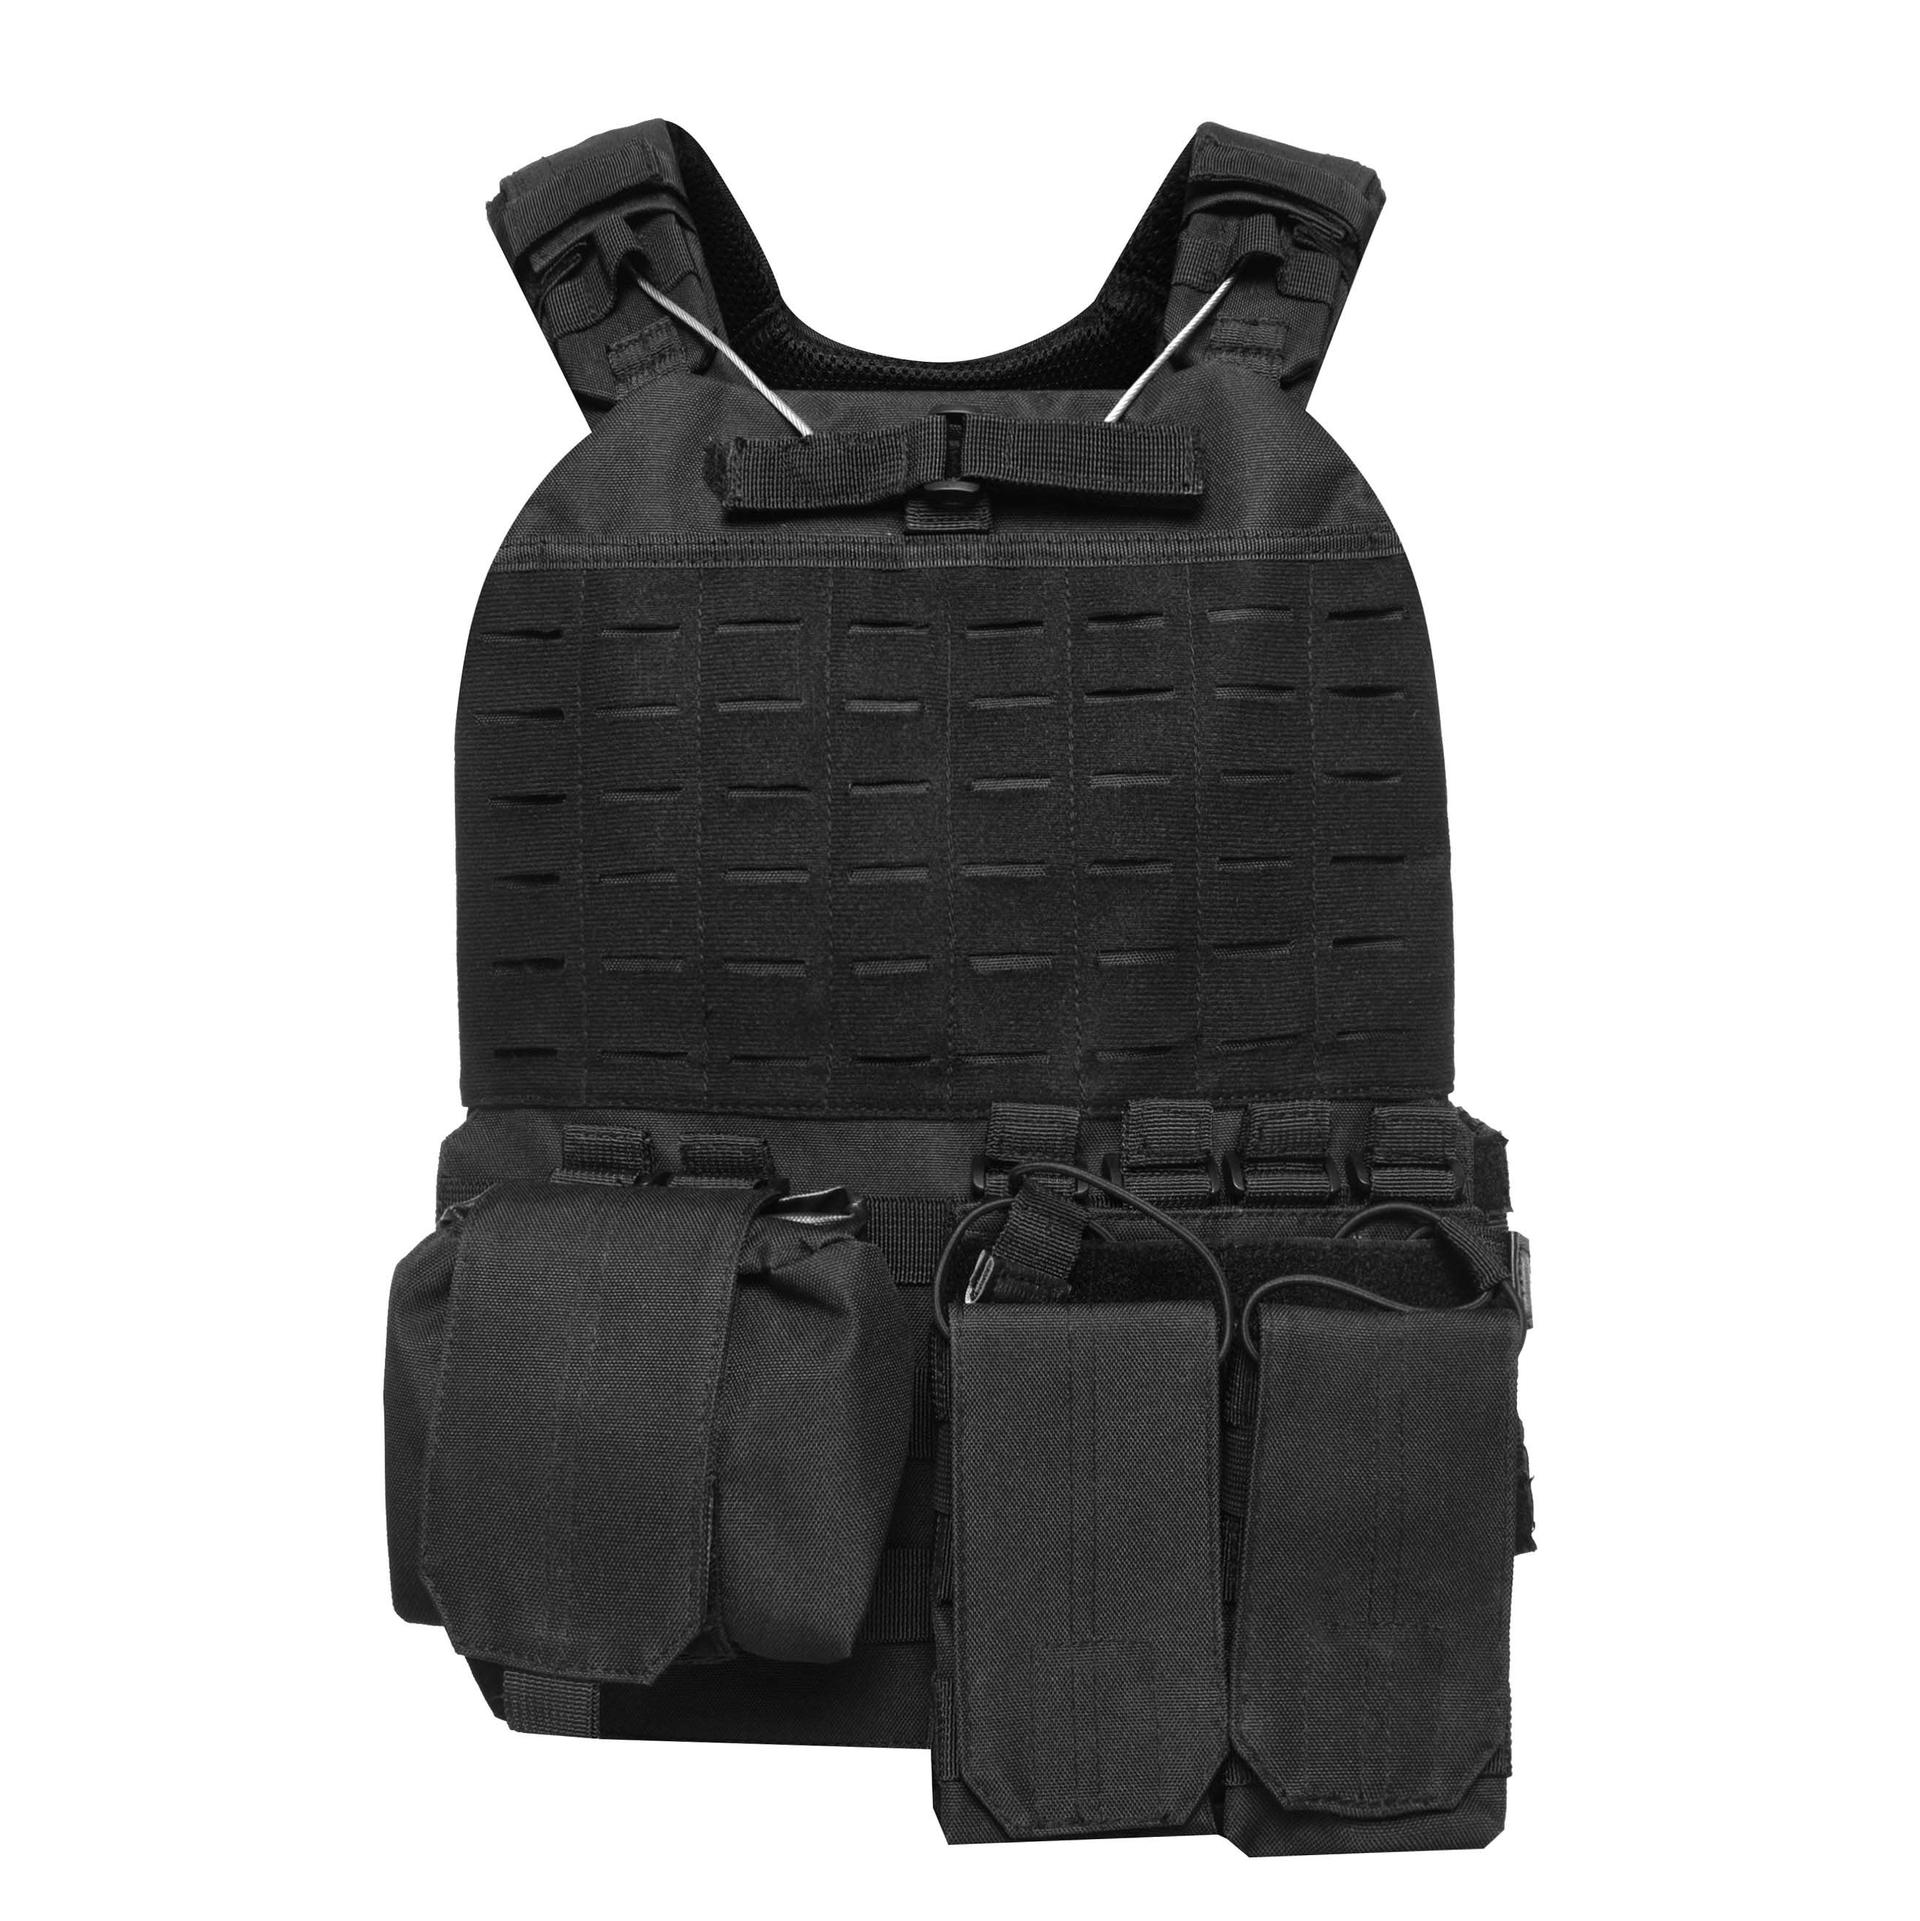 600D Polyester Oxford Black Tactical Vest Bulletproof Plate Carrier TV01B